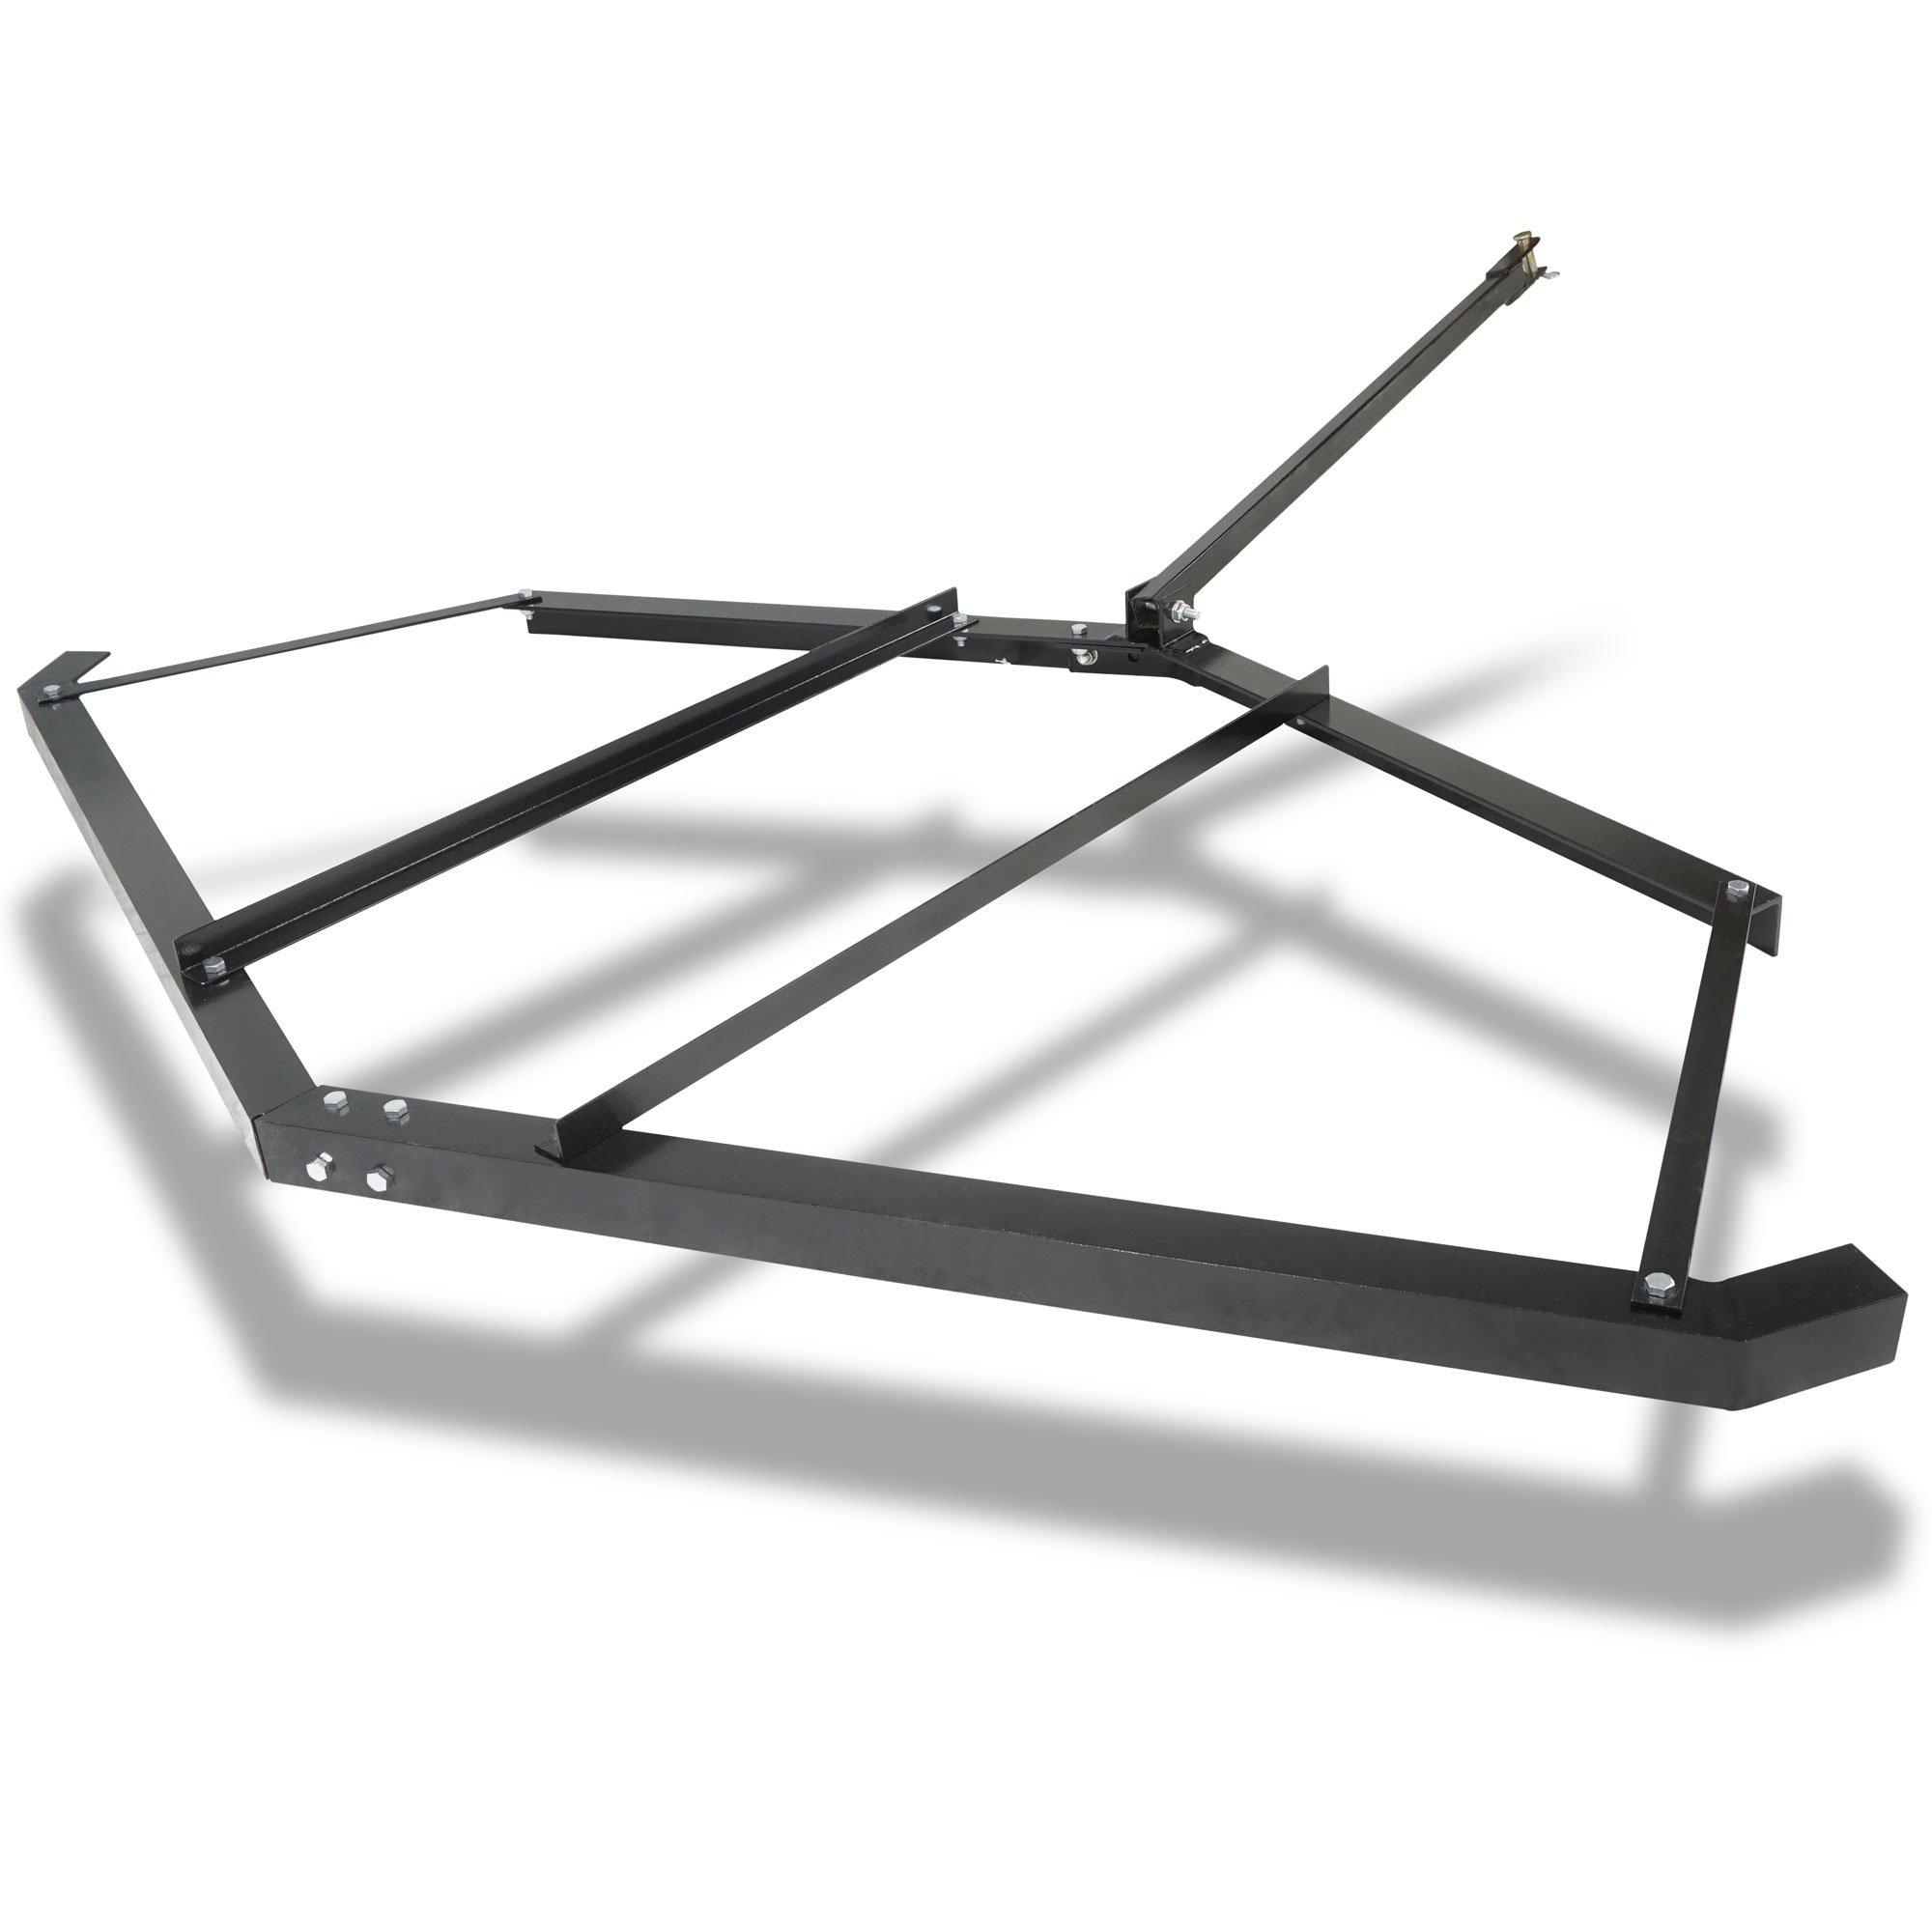 Titan Adjustable Tow-Behind ATV UTV Lawn Tractor Harrow Drag Pin-Style Hitch by Titan Ramps